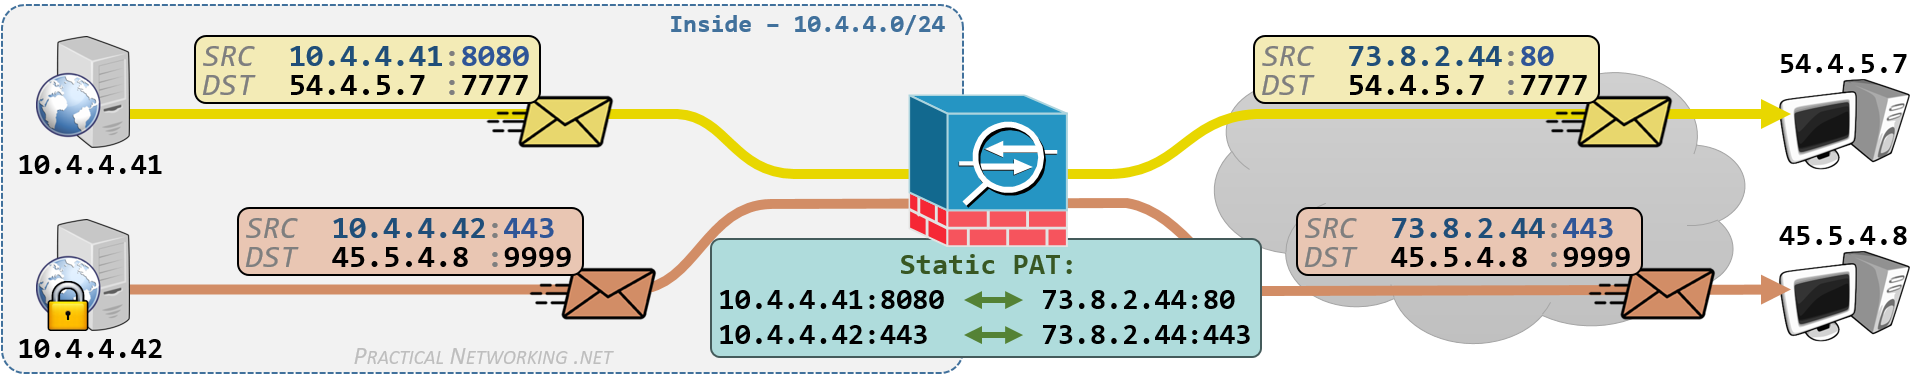 Cisco ASA NAT - Configuring Static PAT with Auto NAT and Manual NAT - Outbound